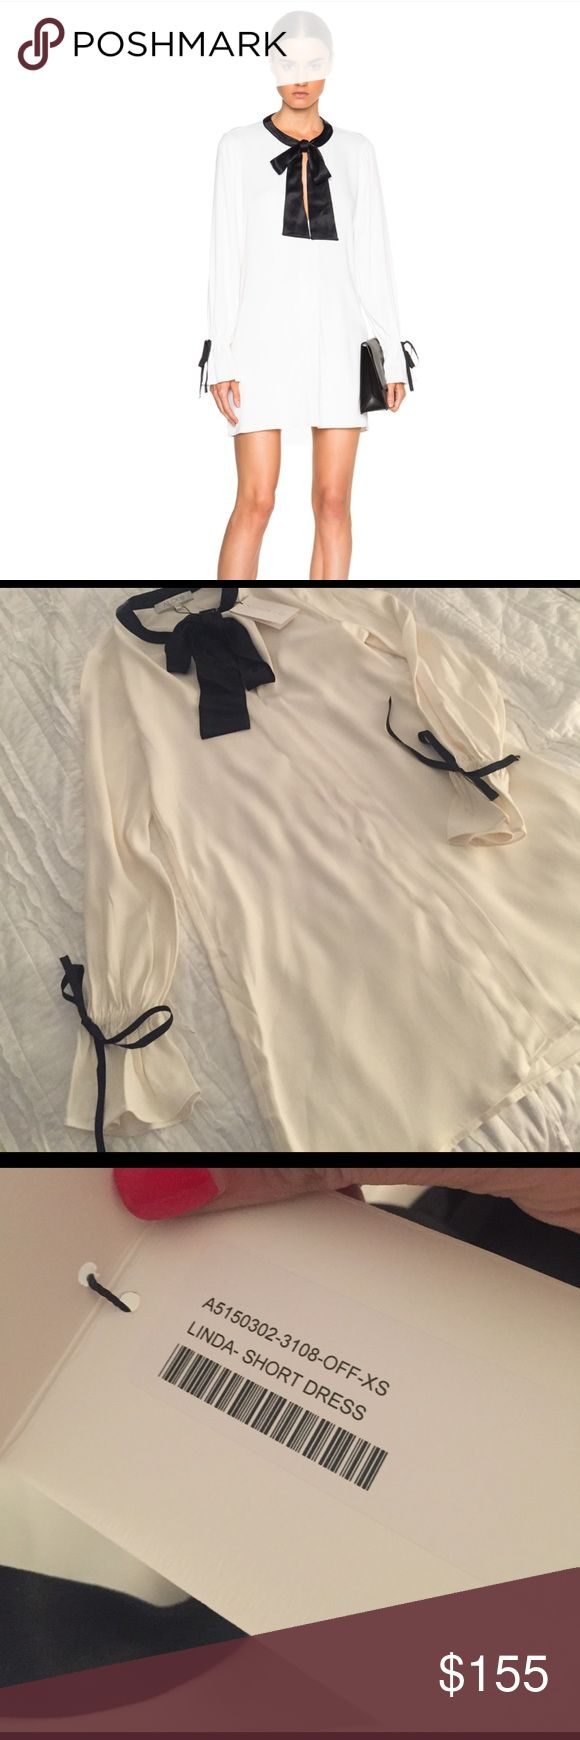 ALEXIS Linda short dress in white NWT blouse style dress with black accent bows to sleeves and neck ALEXIS Dresses Long Sleeve